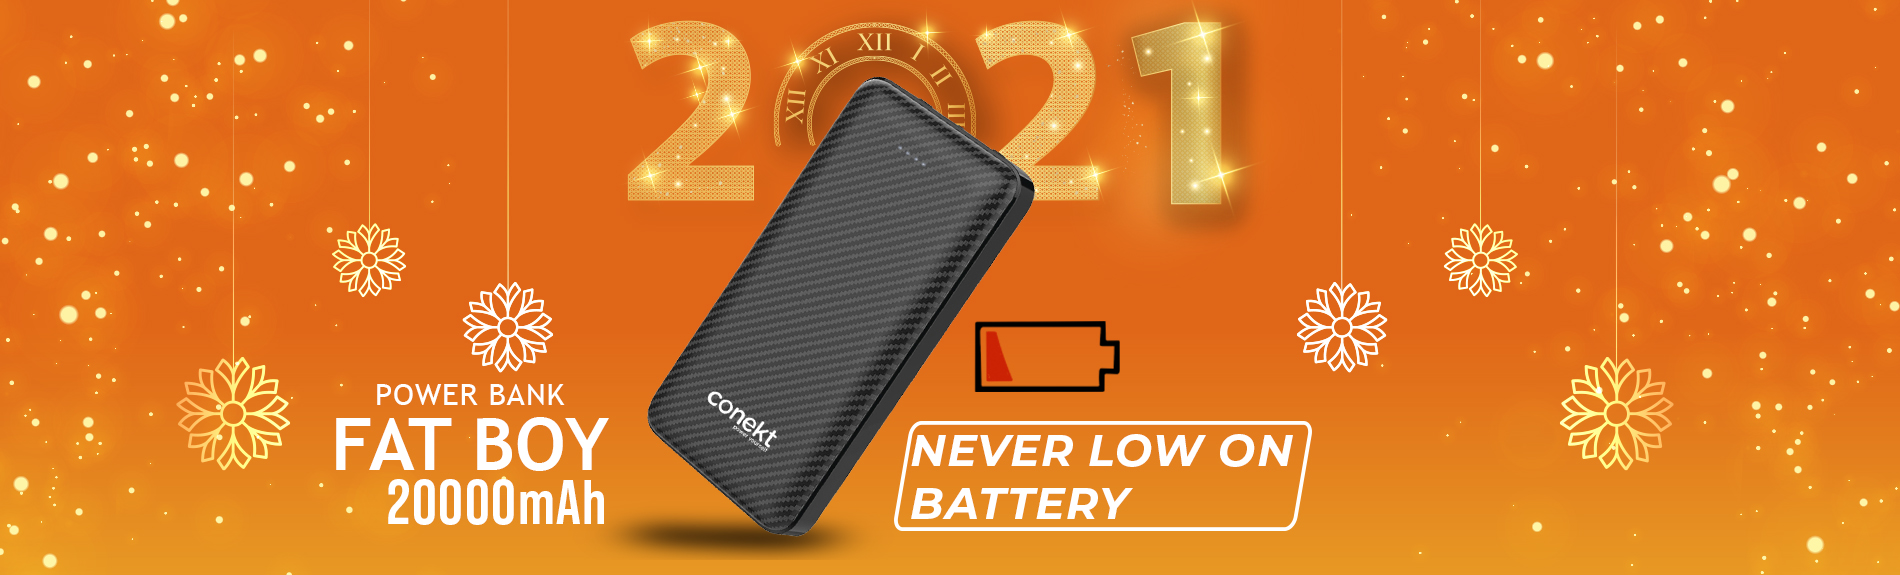 Zeal Fatboy 20000mAh 2.4A Fast Charging Power Bank